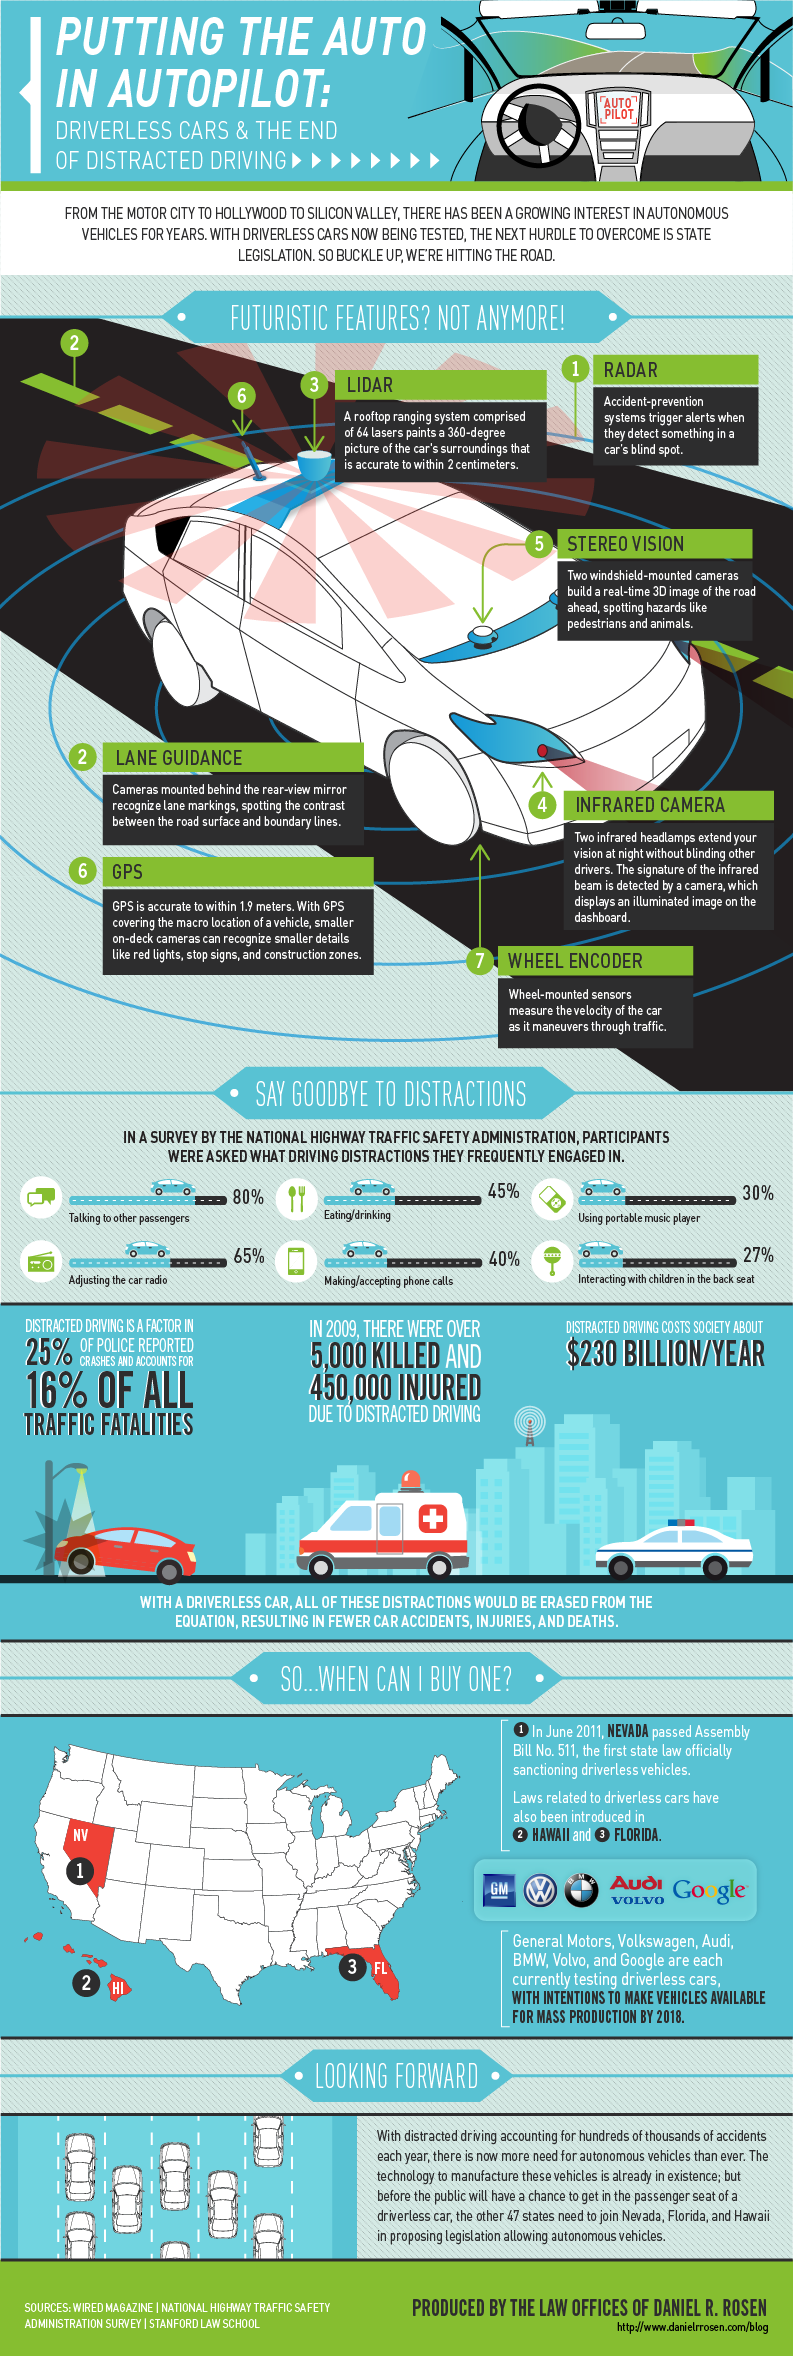 Driverless Car Technology: Facts & Features